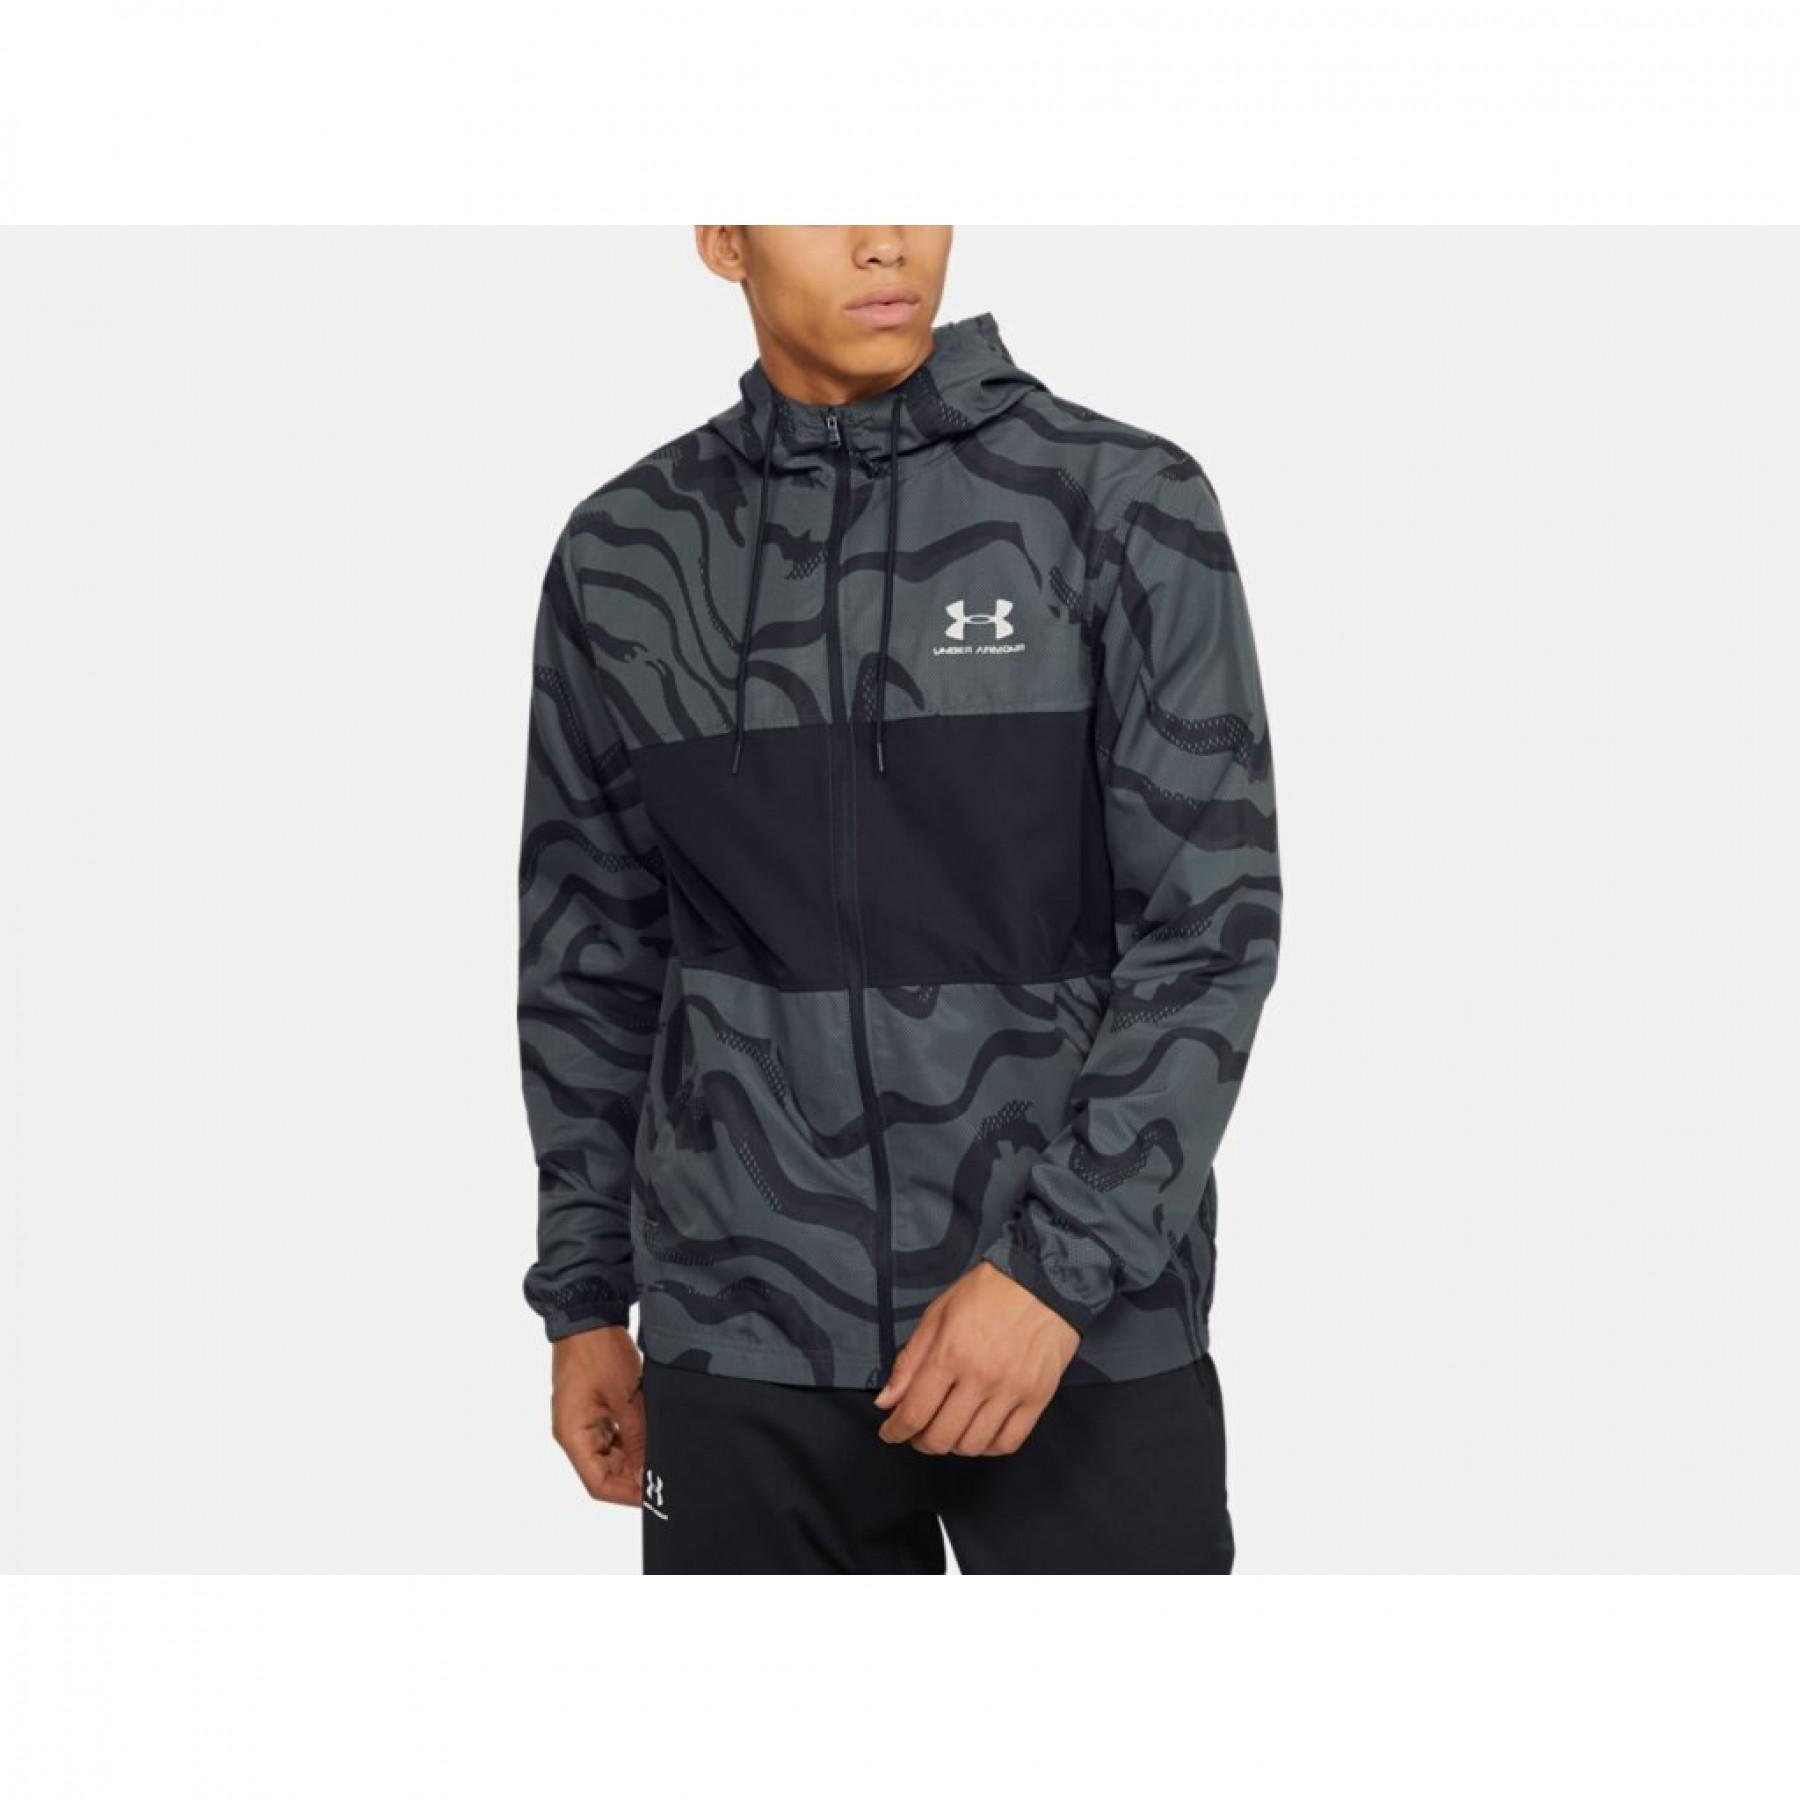 Jacket Under Armour sportstyle Wind Printed